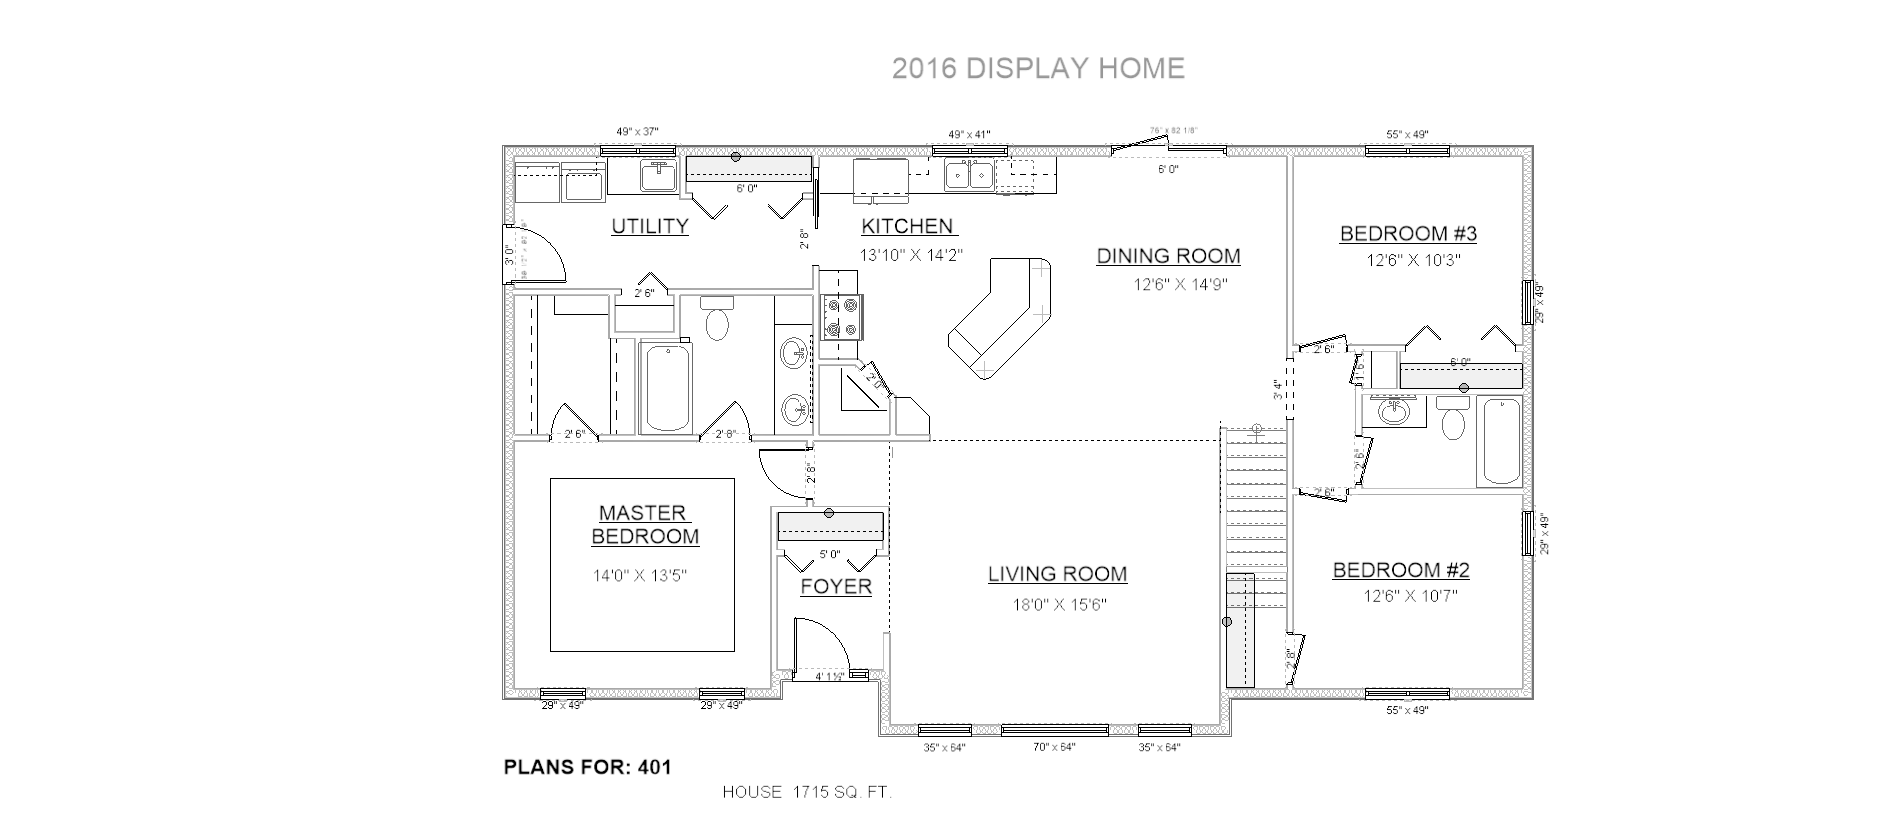 Penner Homes Floor Plan Id: 401